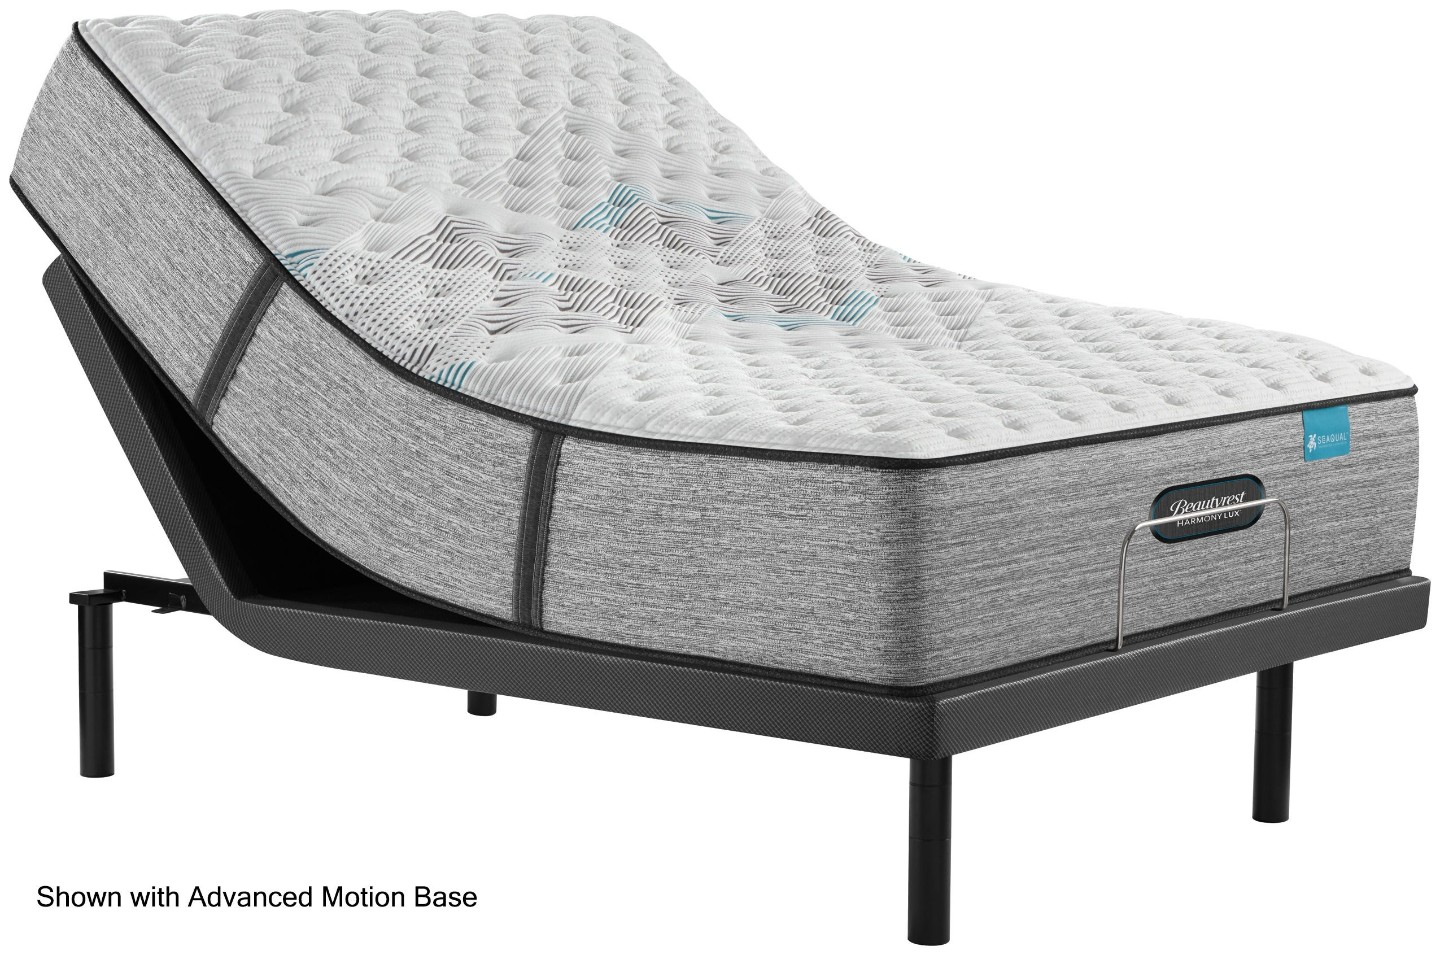 simmons-beautyrest-harmony-lux-hlc-1000-extra-firm-mattress-7.jpg